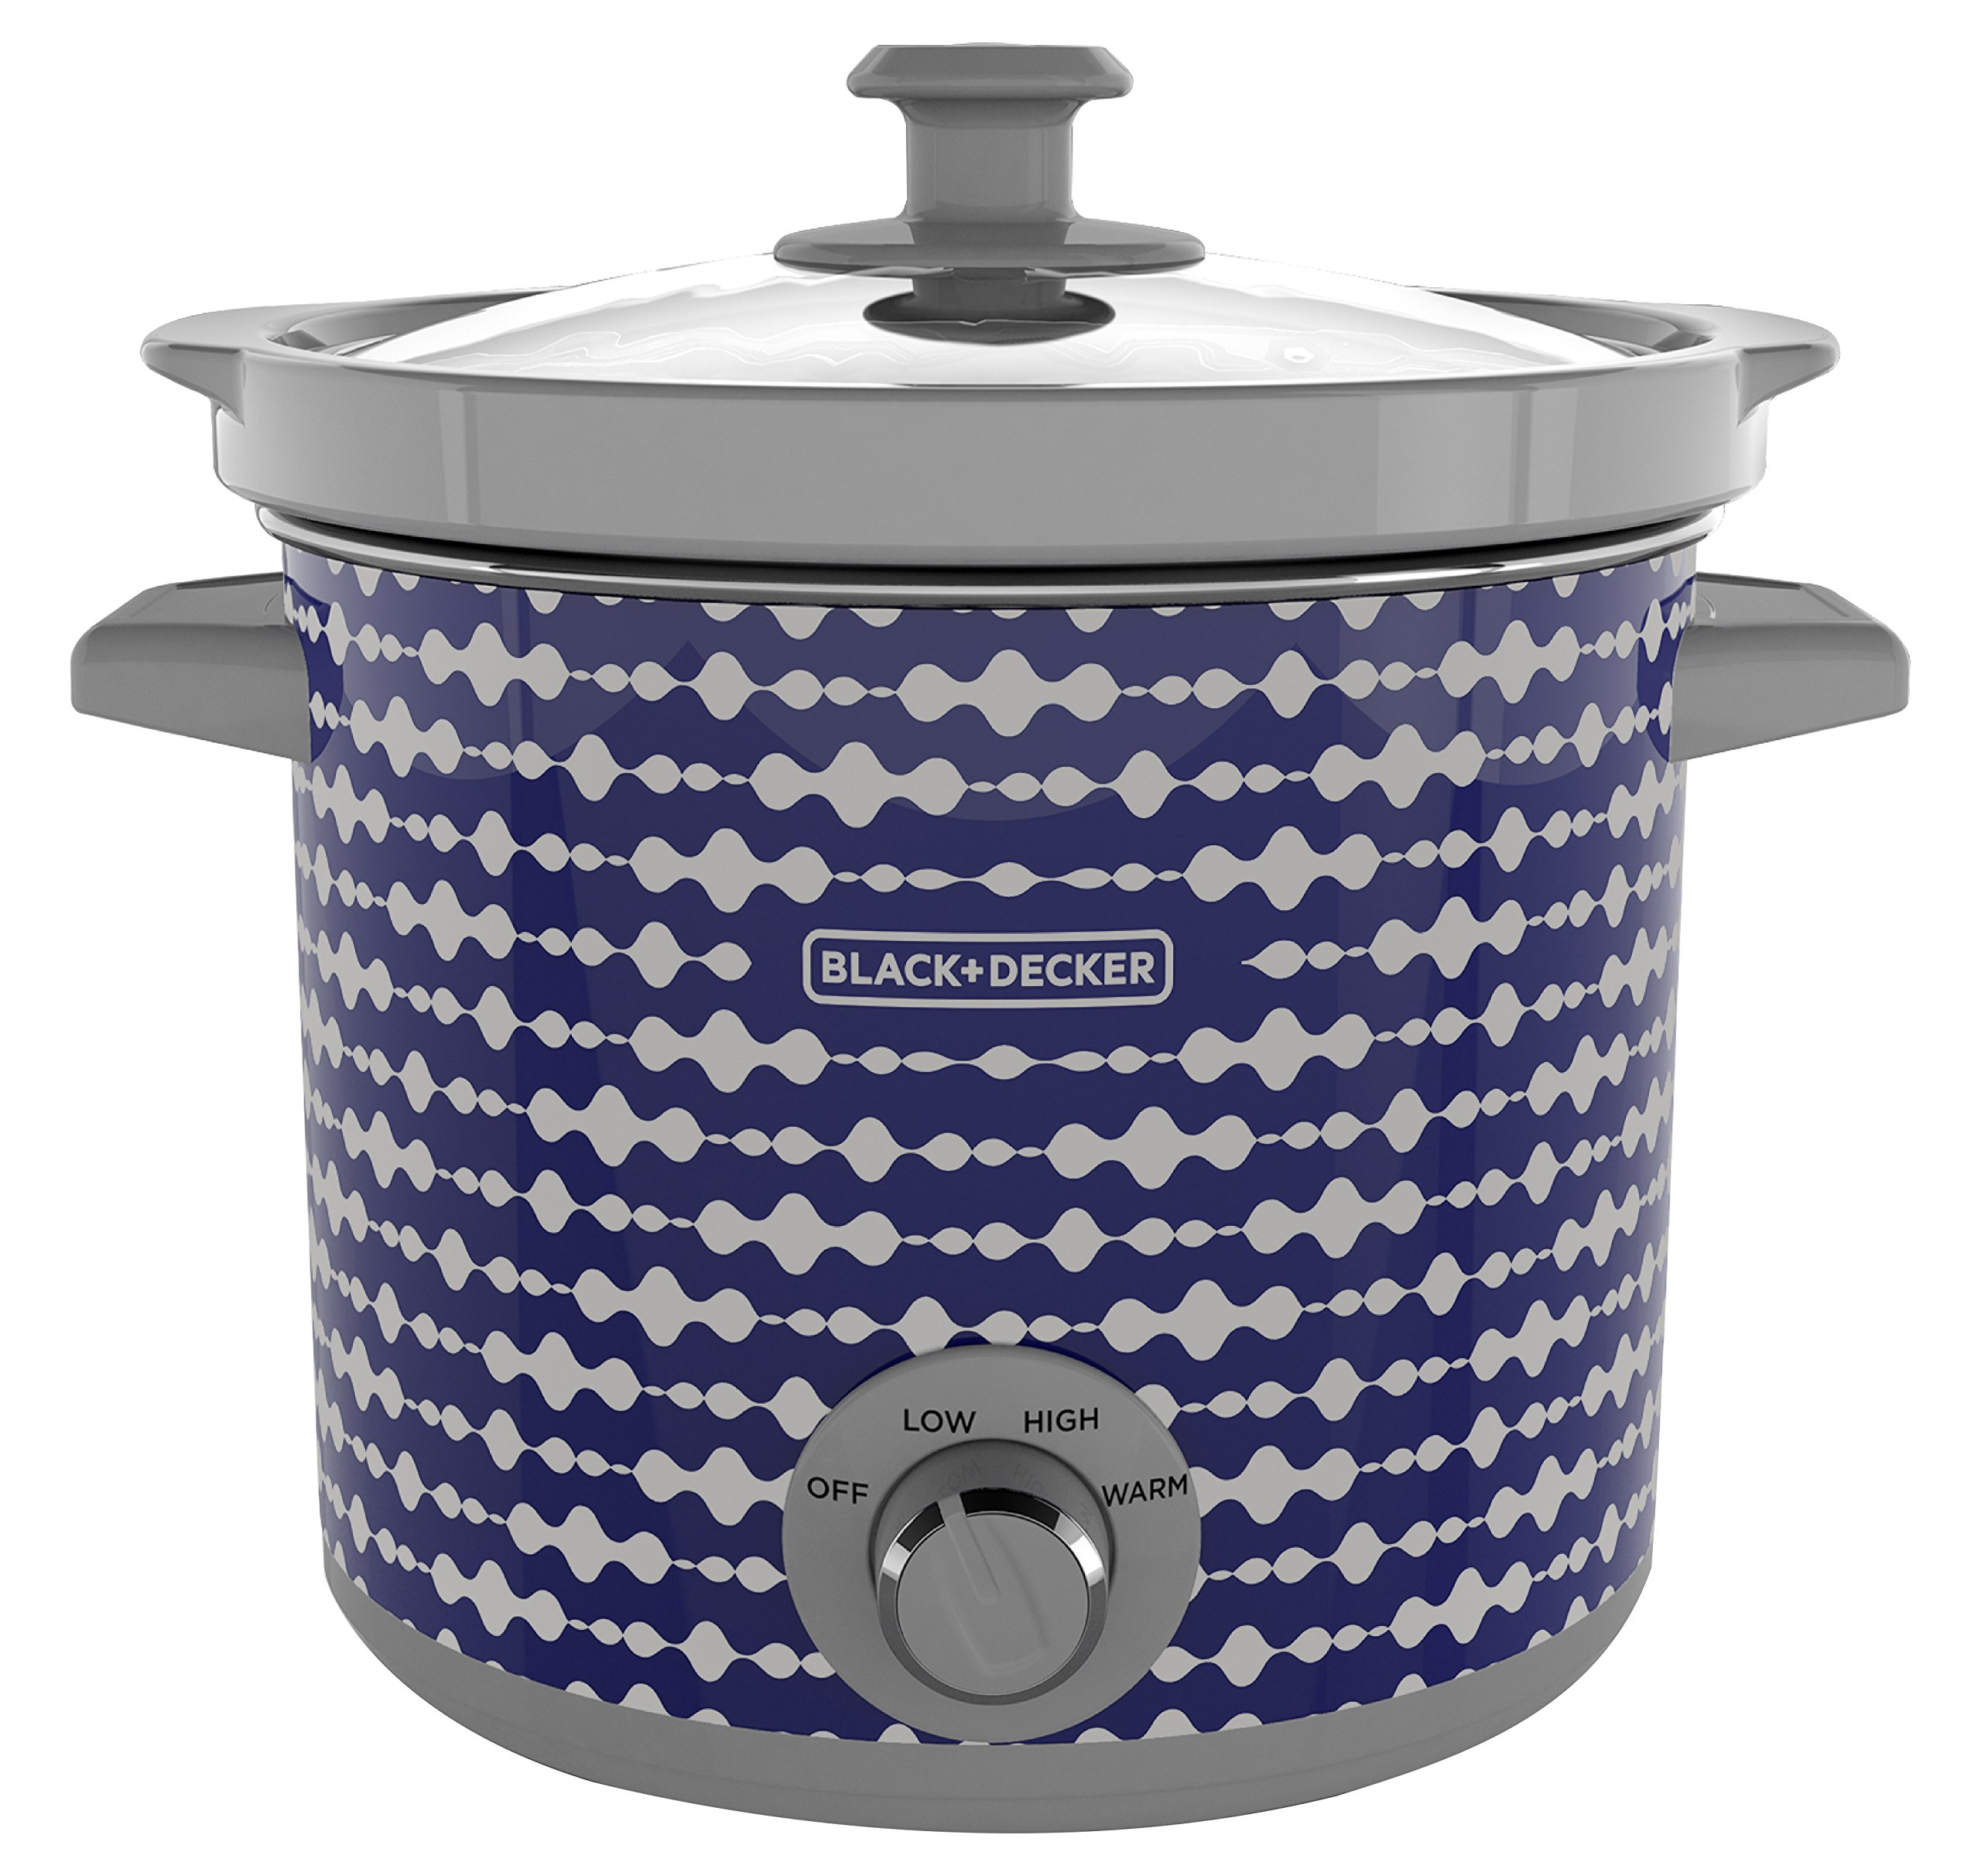 BLACK+DECKER SC2004D 4 Quart Dial Control Slow Cooker with Built in Lid Holder, Purple Pulse by Black & Decker (Image #1)